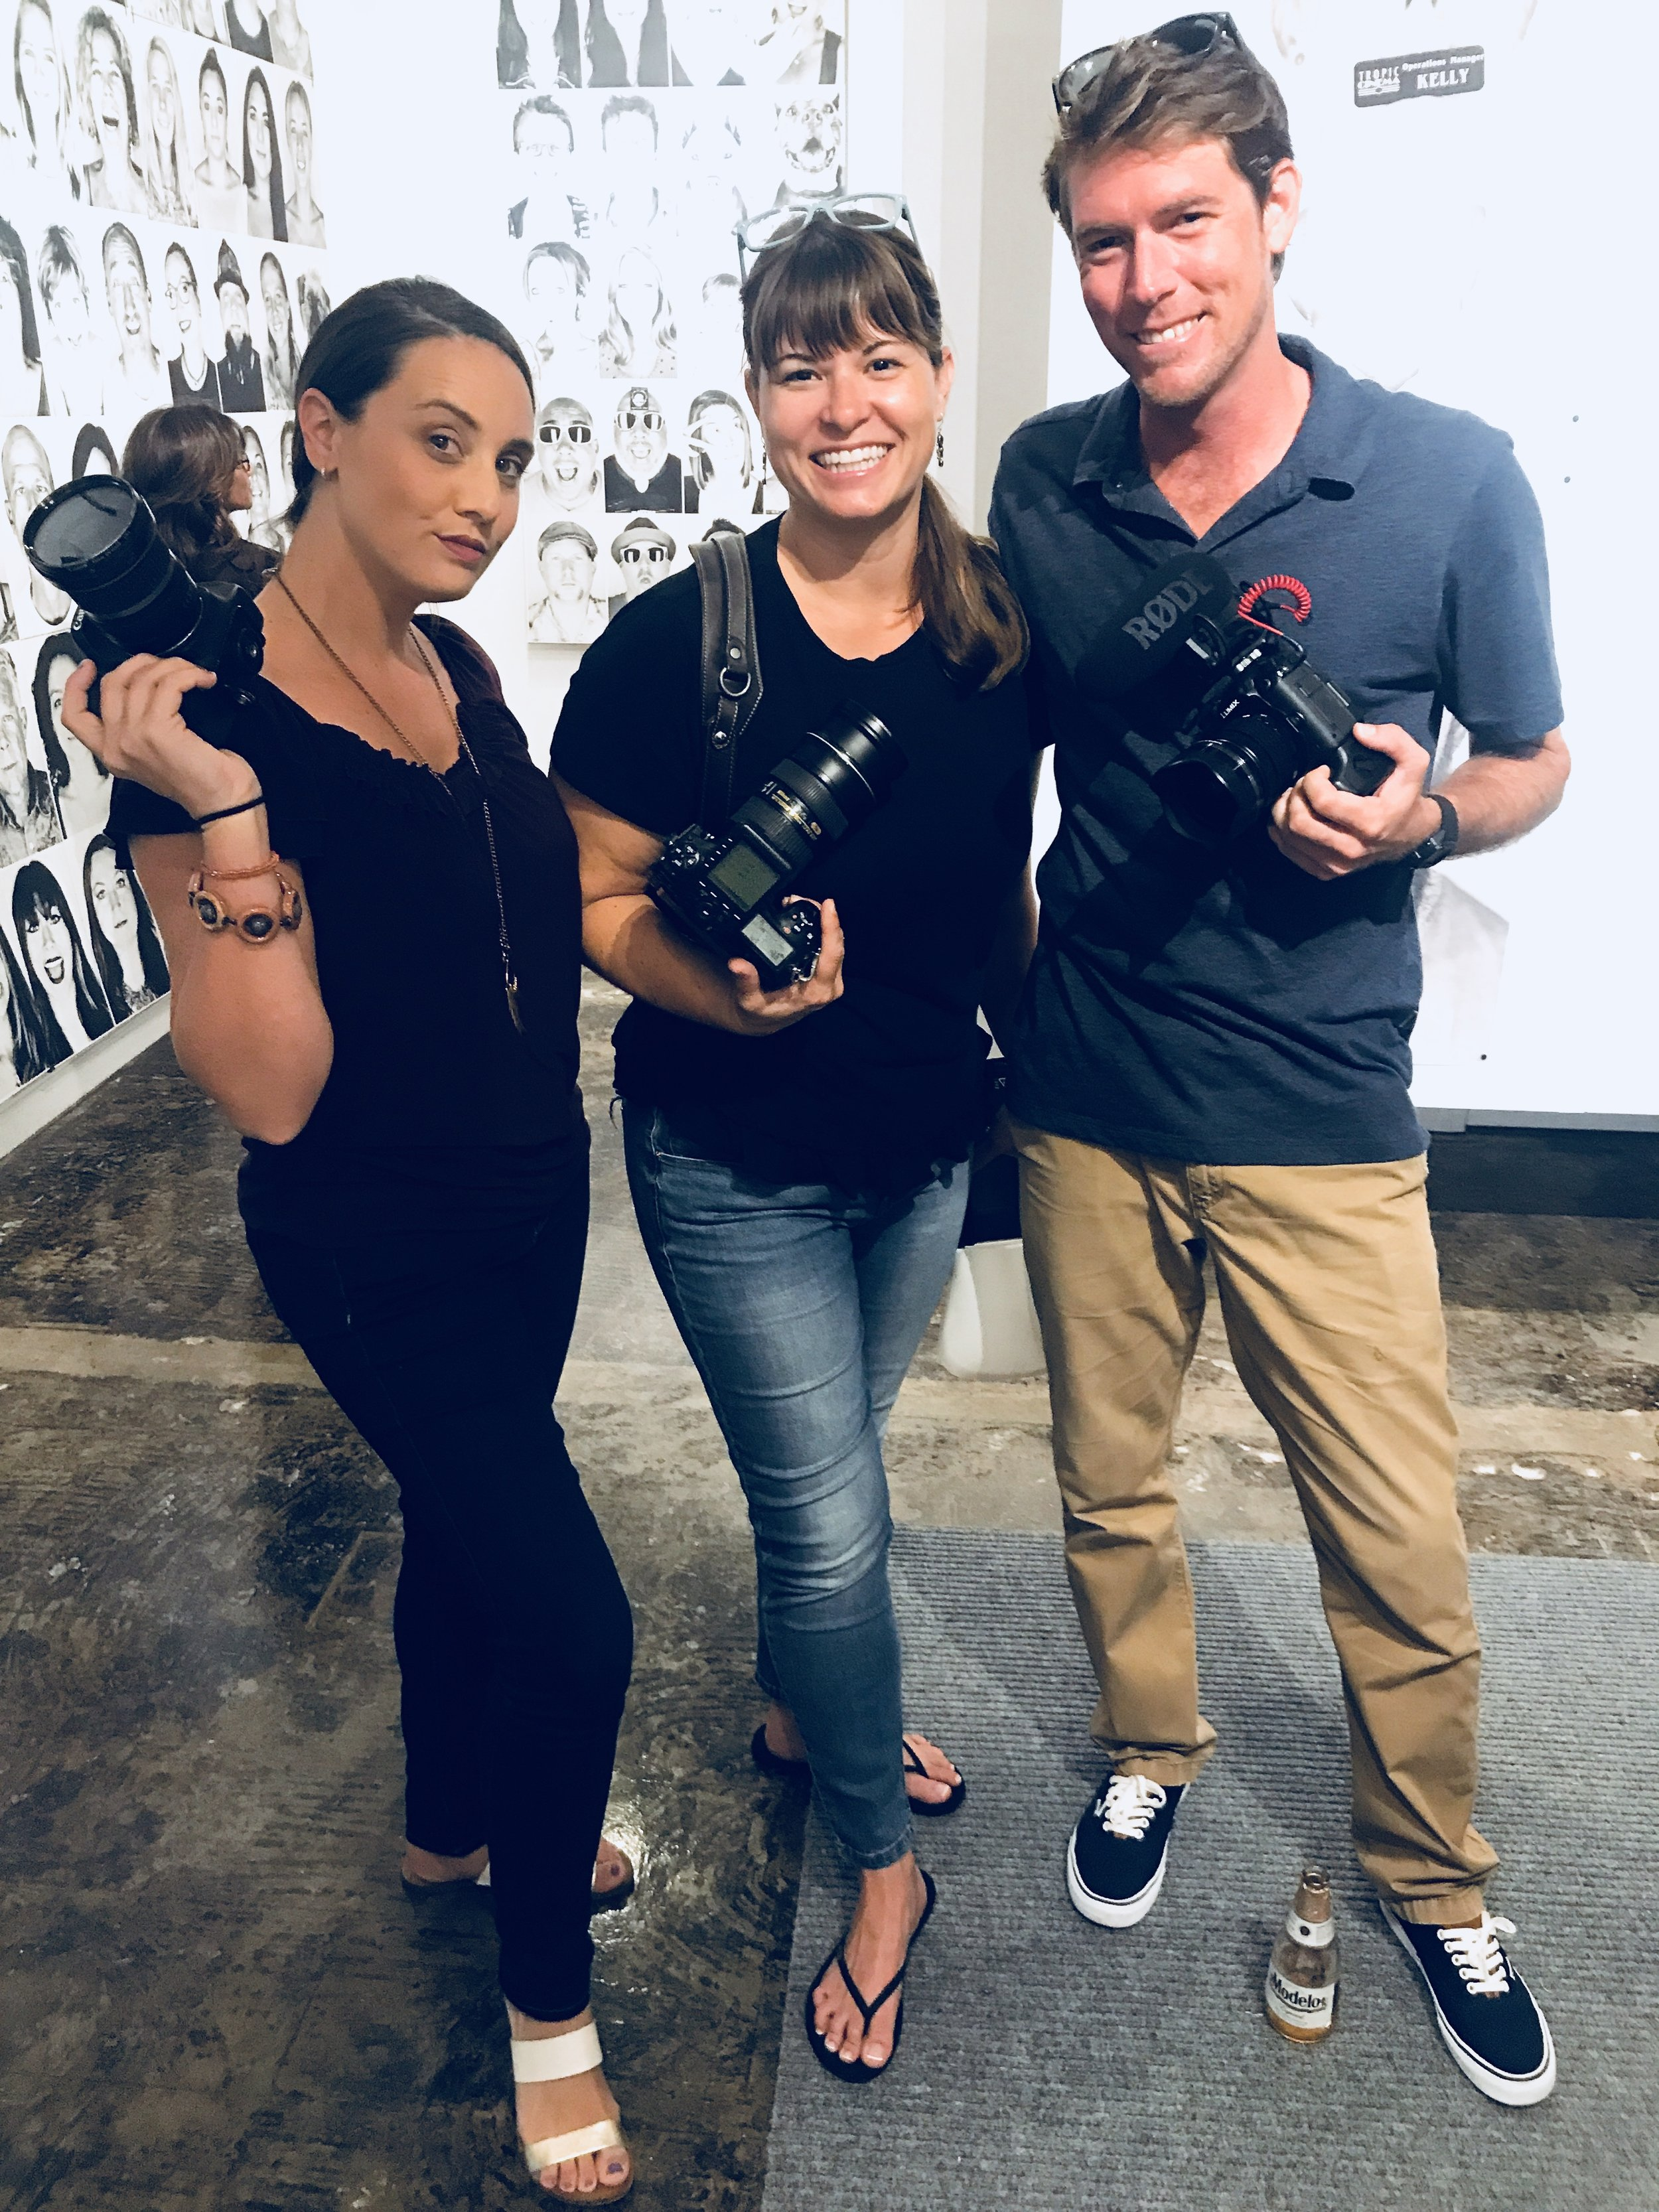 Me, my friend Rachel Ligon, and filmmaker Matthew Dockery, all showing our support at Tom Flip's Heads Up Key West Gallery Opening at The Studios of Key West